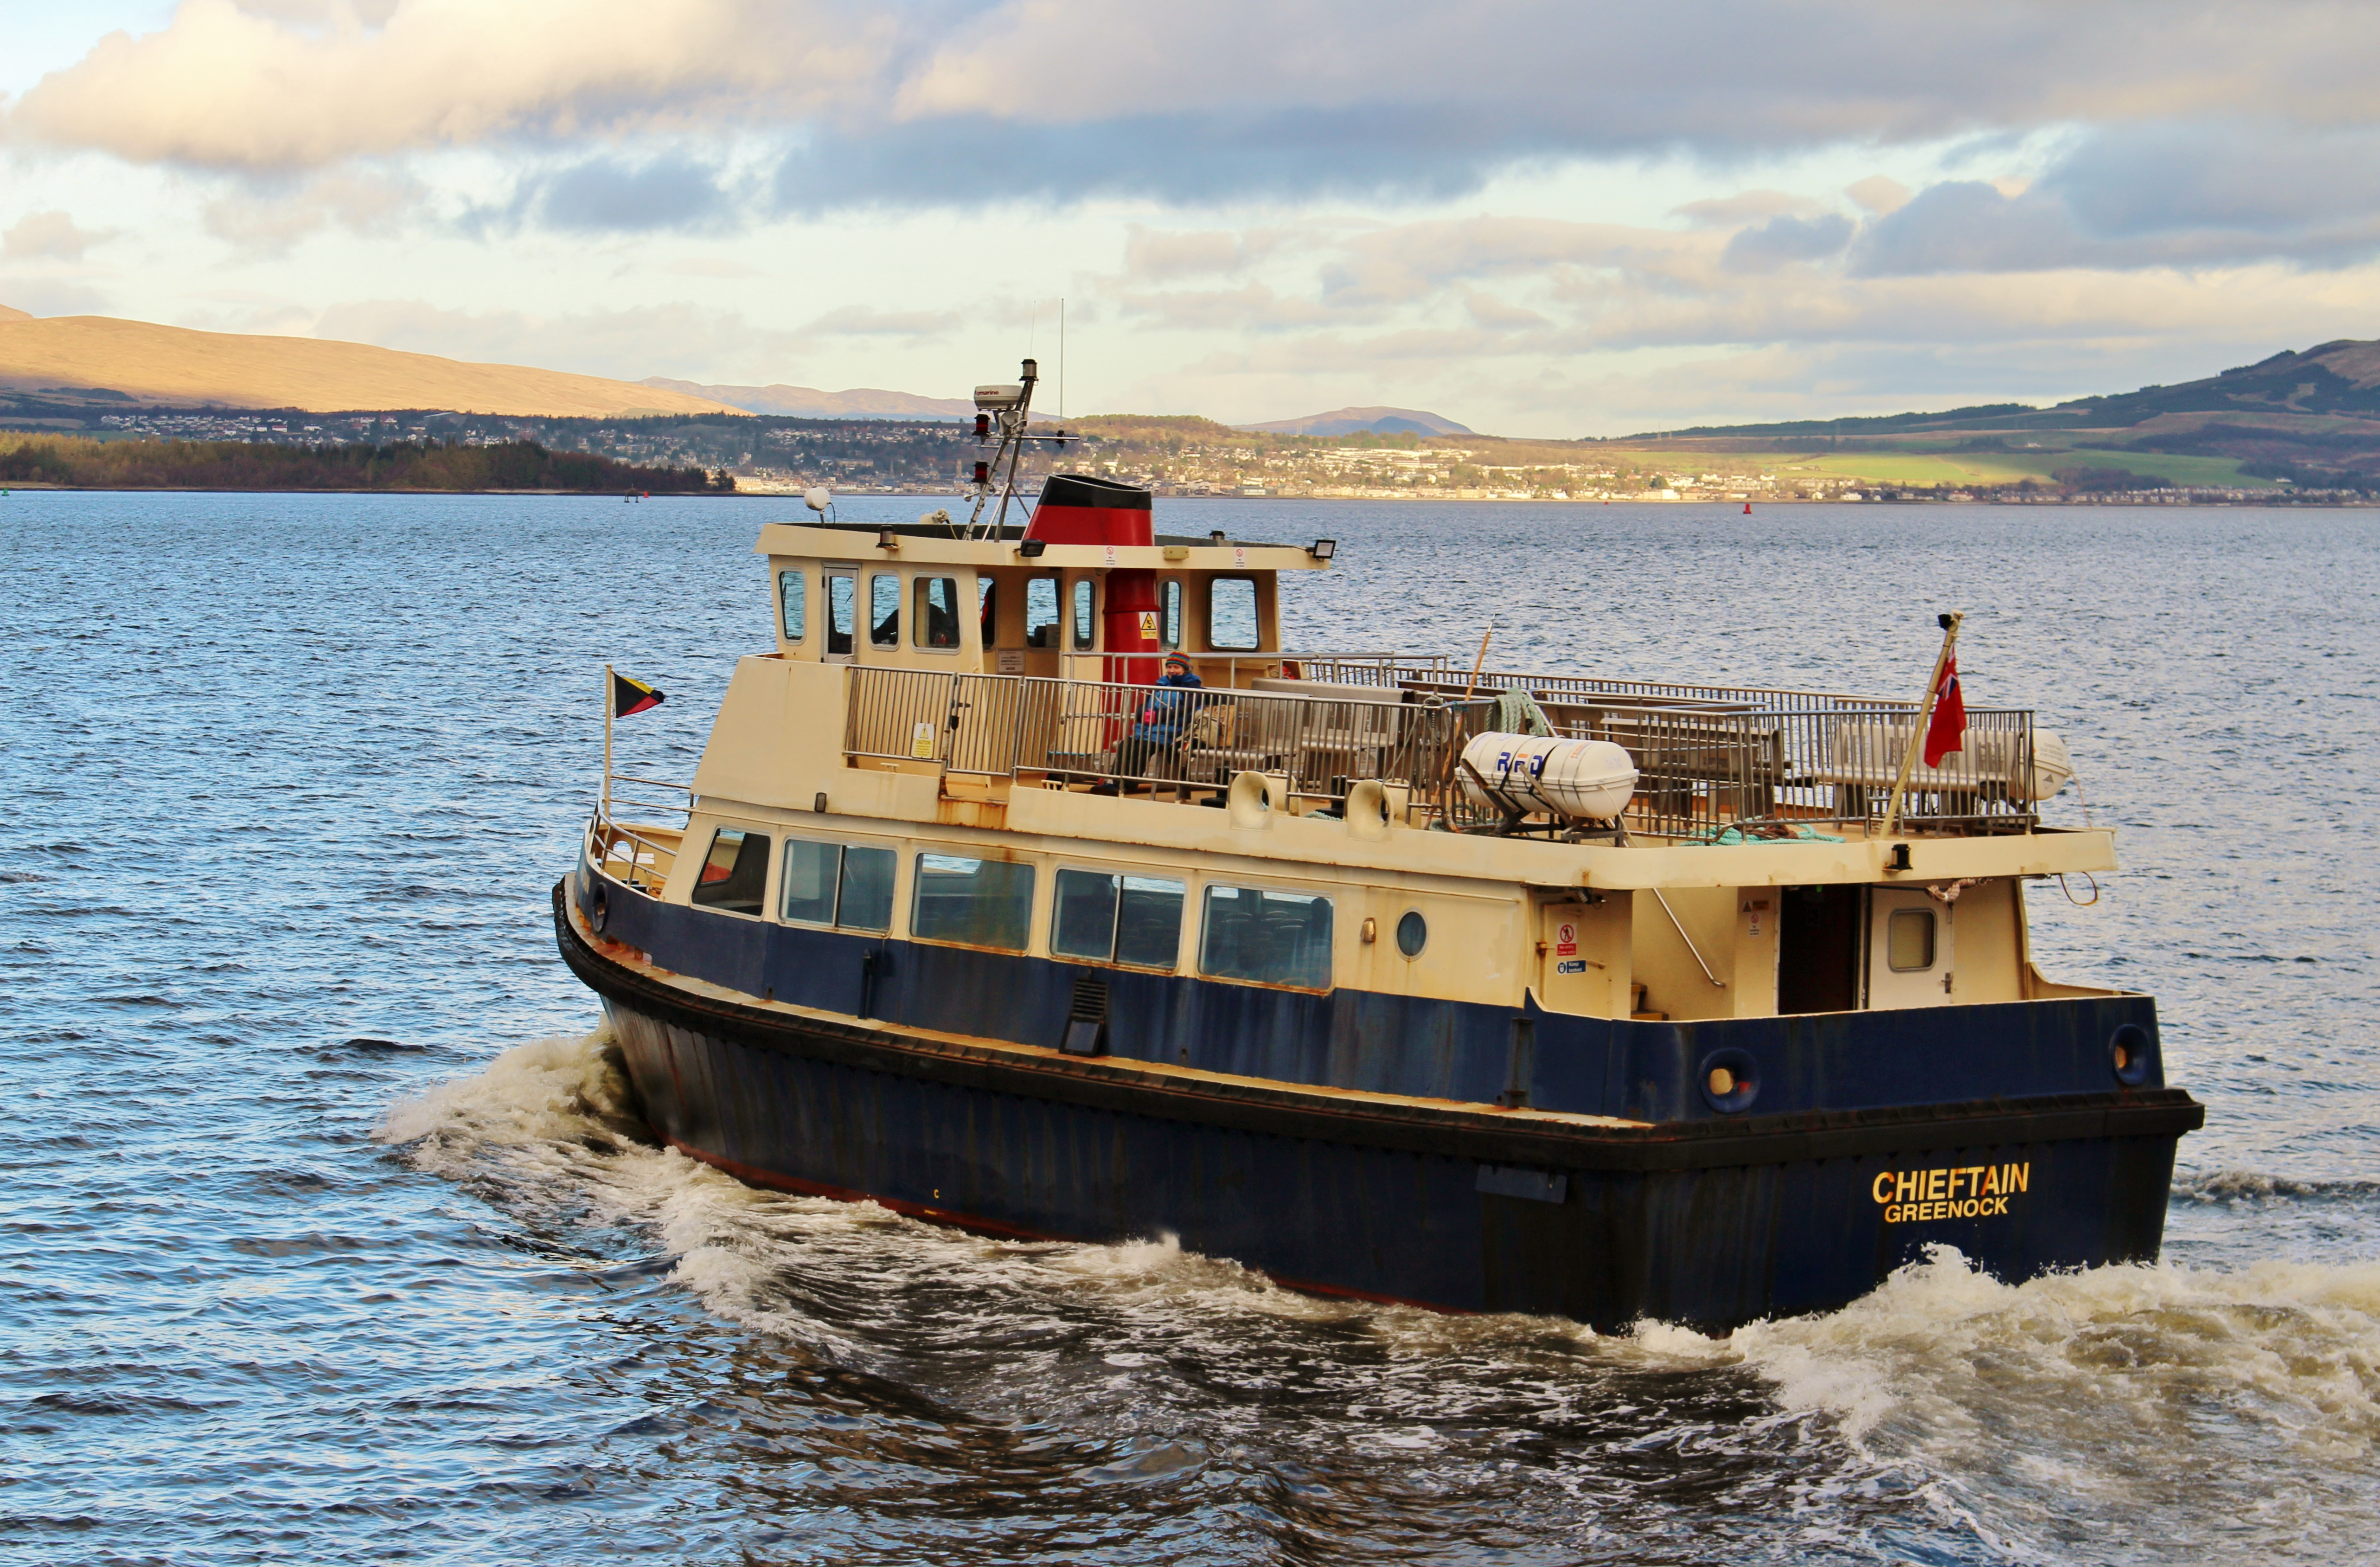 Chieftain leaving Gourock in 2020 (Ships of CalMac)